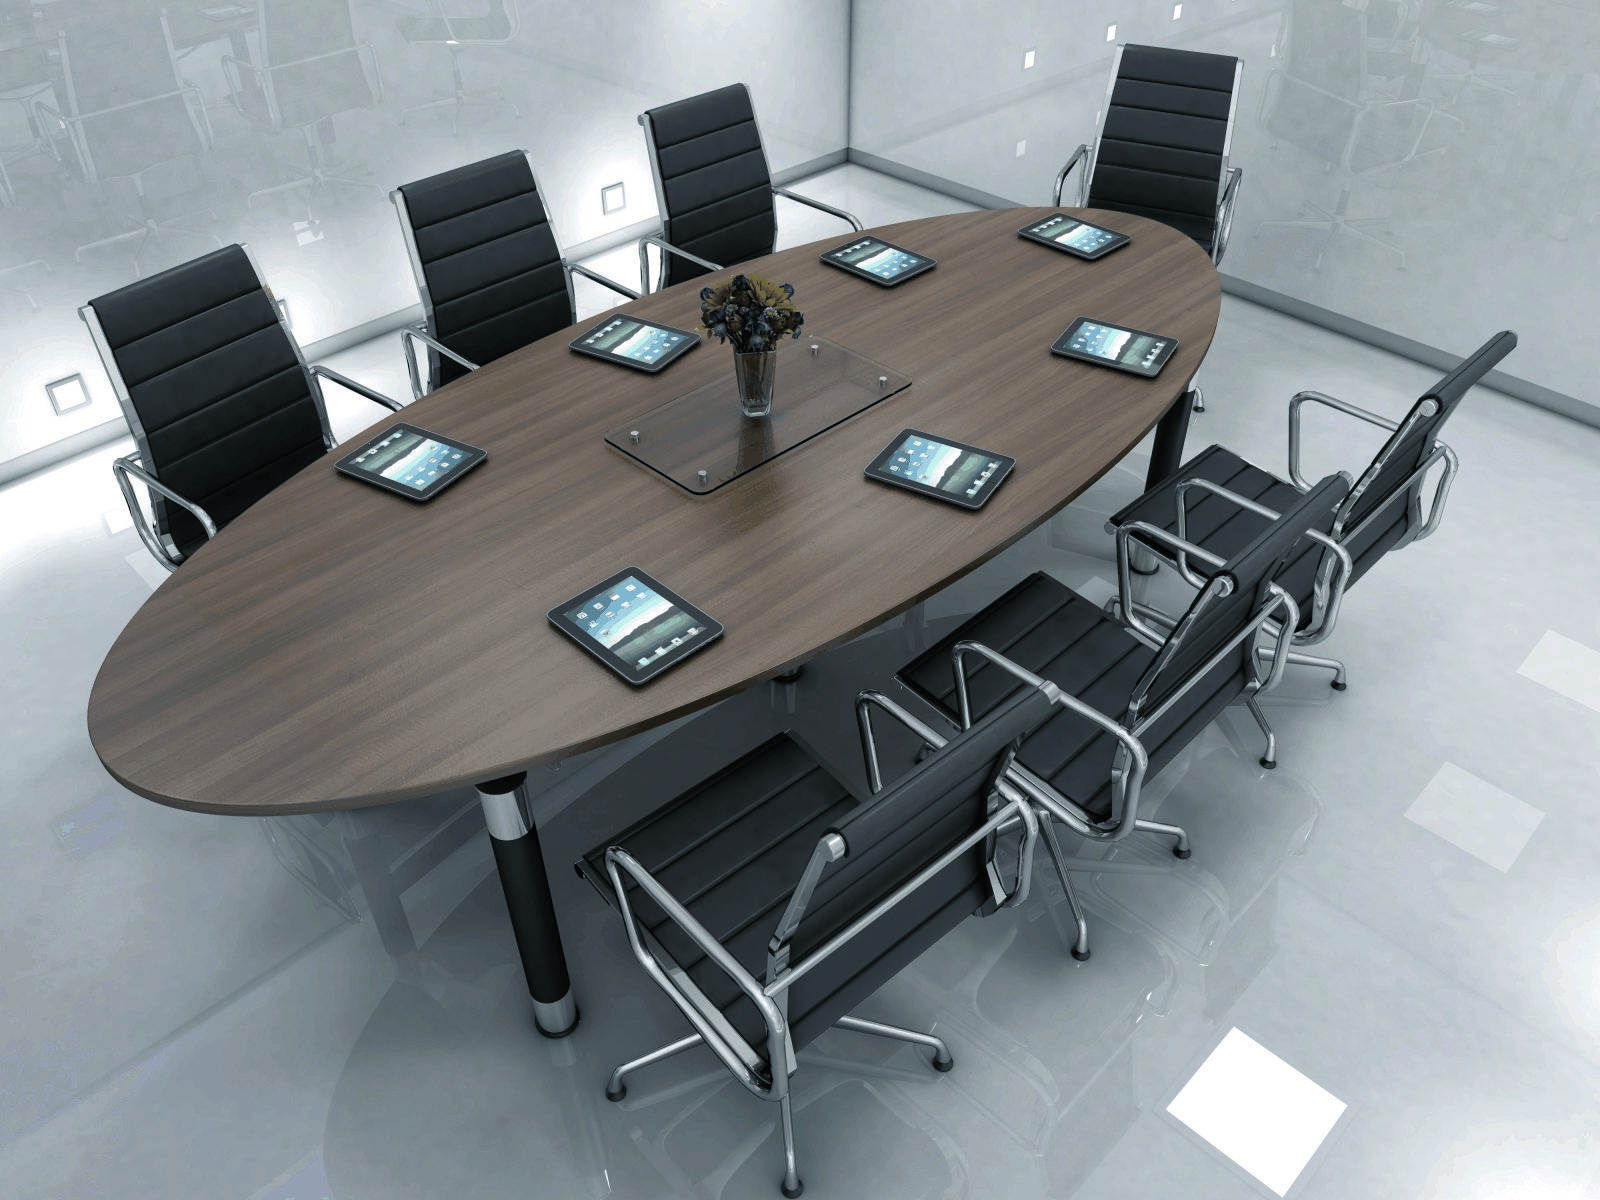 Meeting Room Tables Dark Wood Oval Meeting Room Desk And Black Chairs Dark Wood